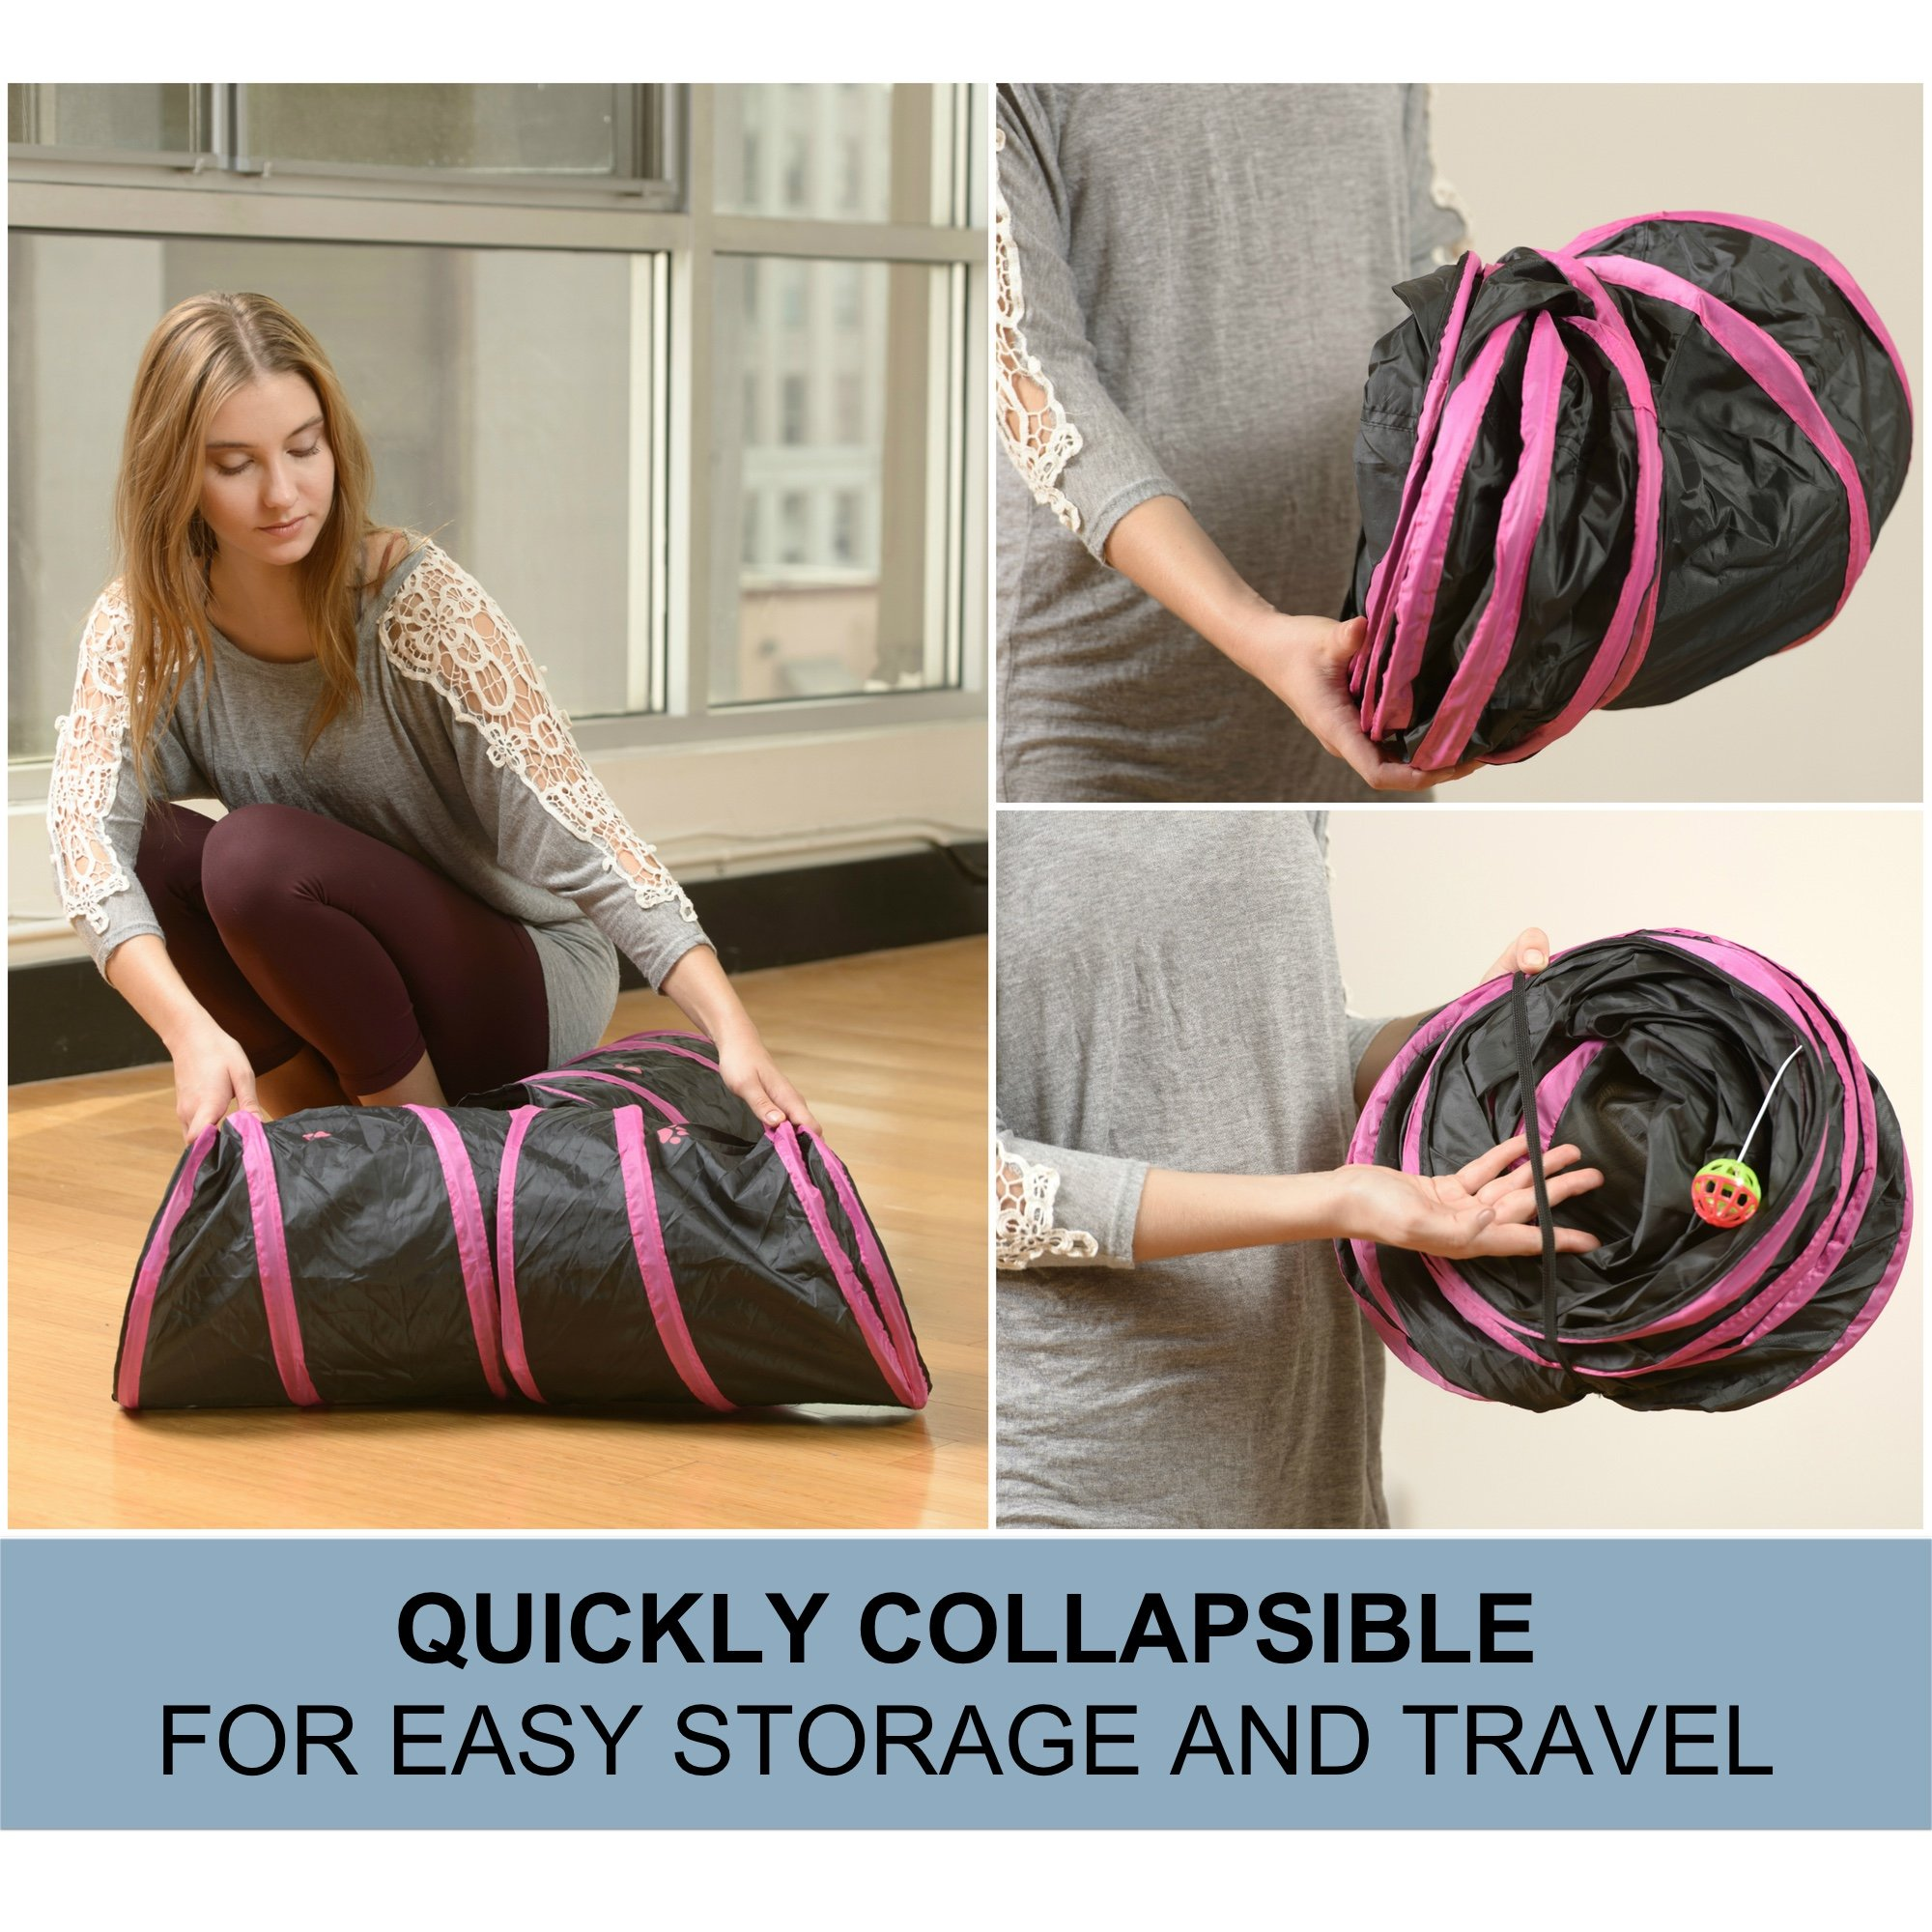 Prosper Pet Cat Tunnel - Collapsible 3 Way Play Toy - Interactive Tube Toys for Rabbits, Kittens, and Dogs - Black/Pink by Prosper Pet (Image #4)